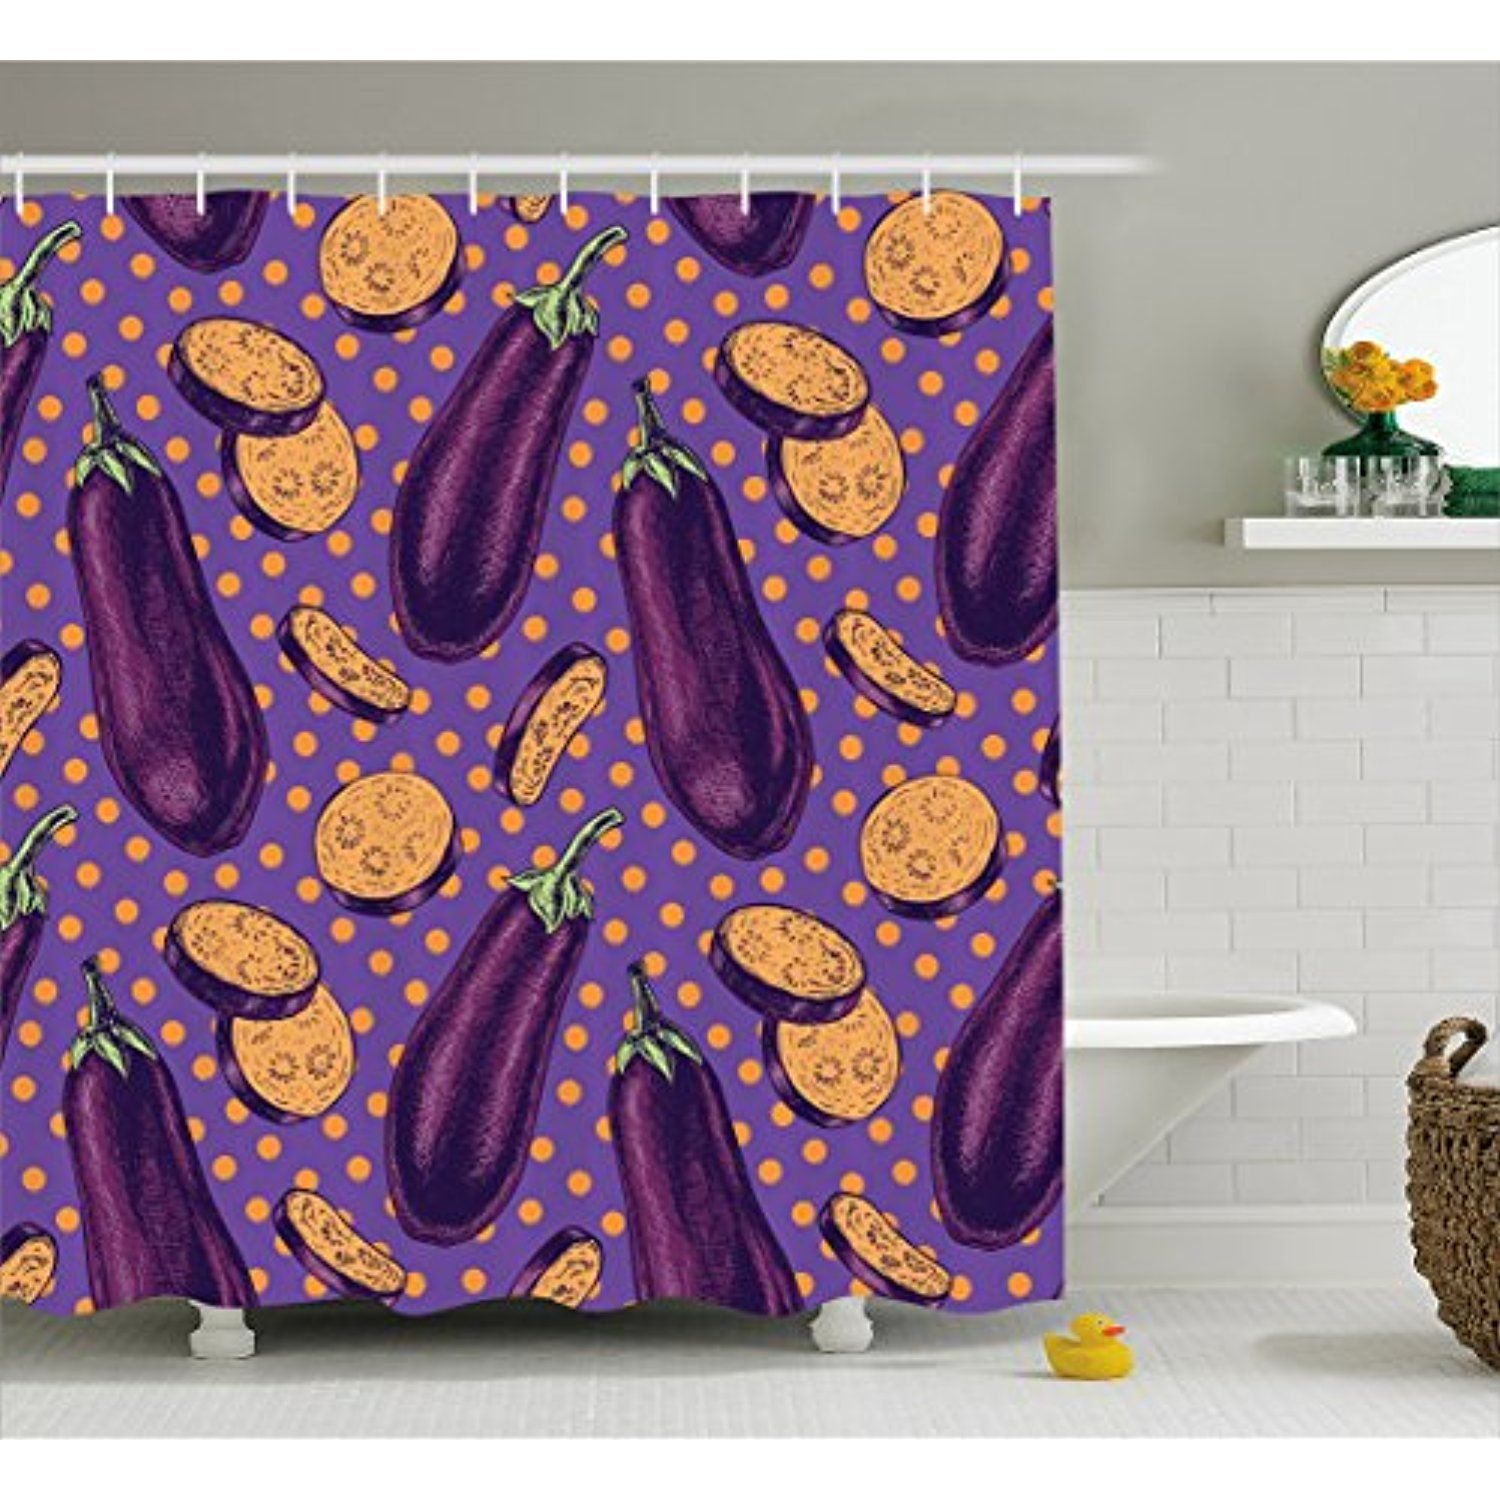 Eggplant Shower Curtain By Ambesonne Realistic Looking Eggplants With Eighties Inspired And Dotted Purple Bac Bathroom Decor Sets Ambesonne Purple Backgrounds